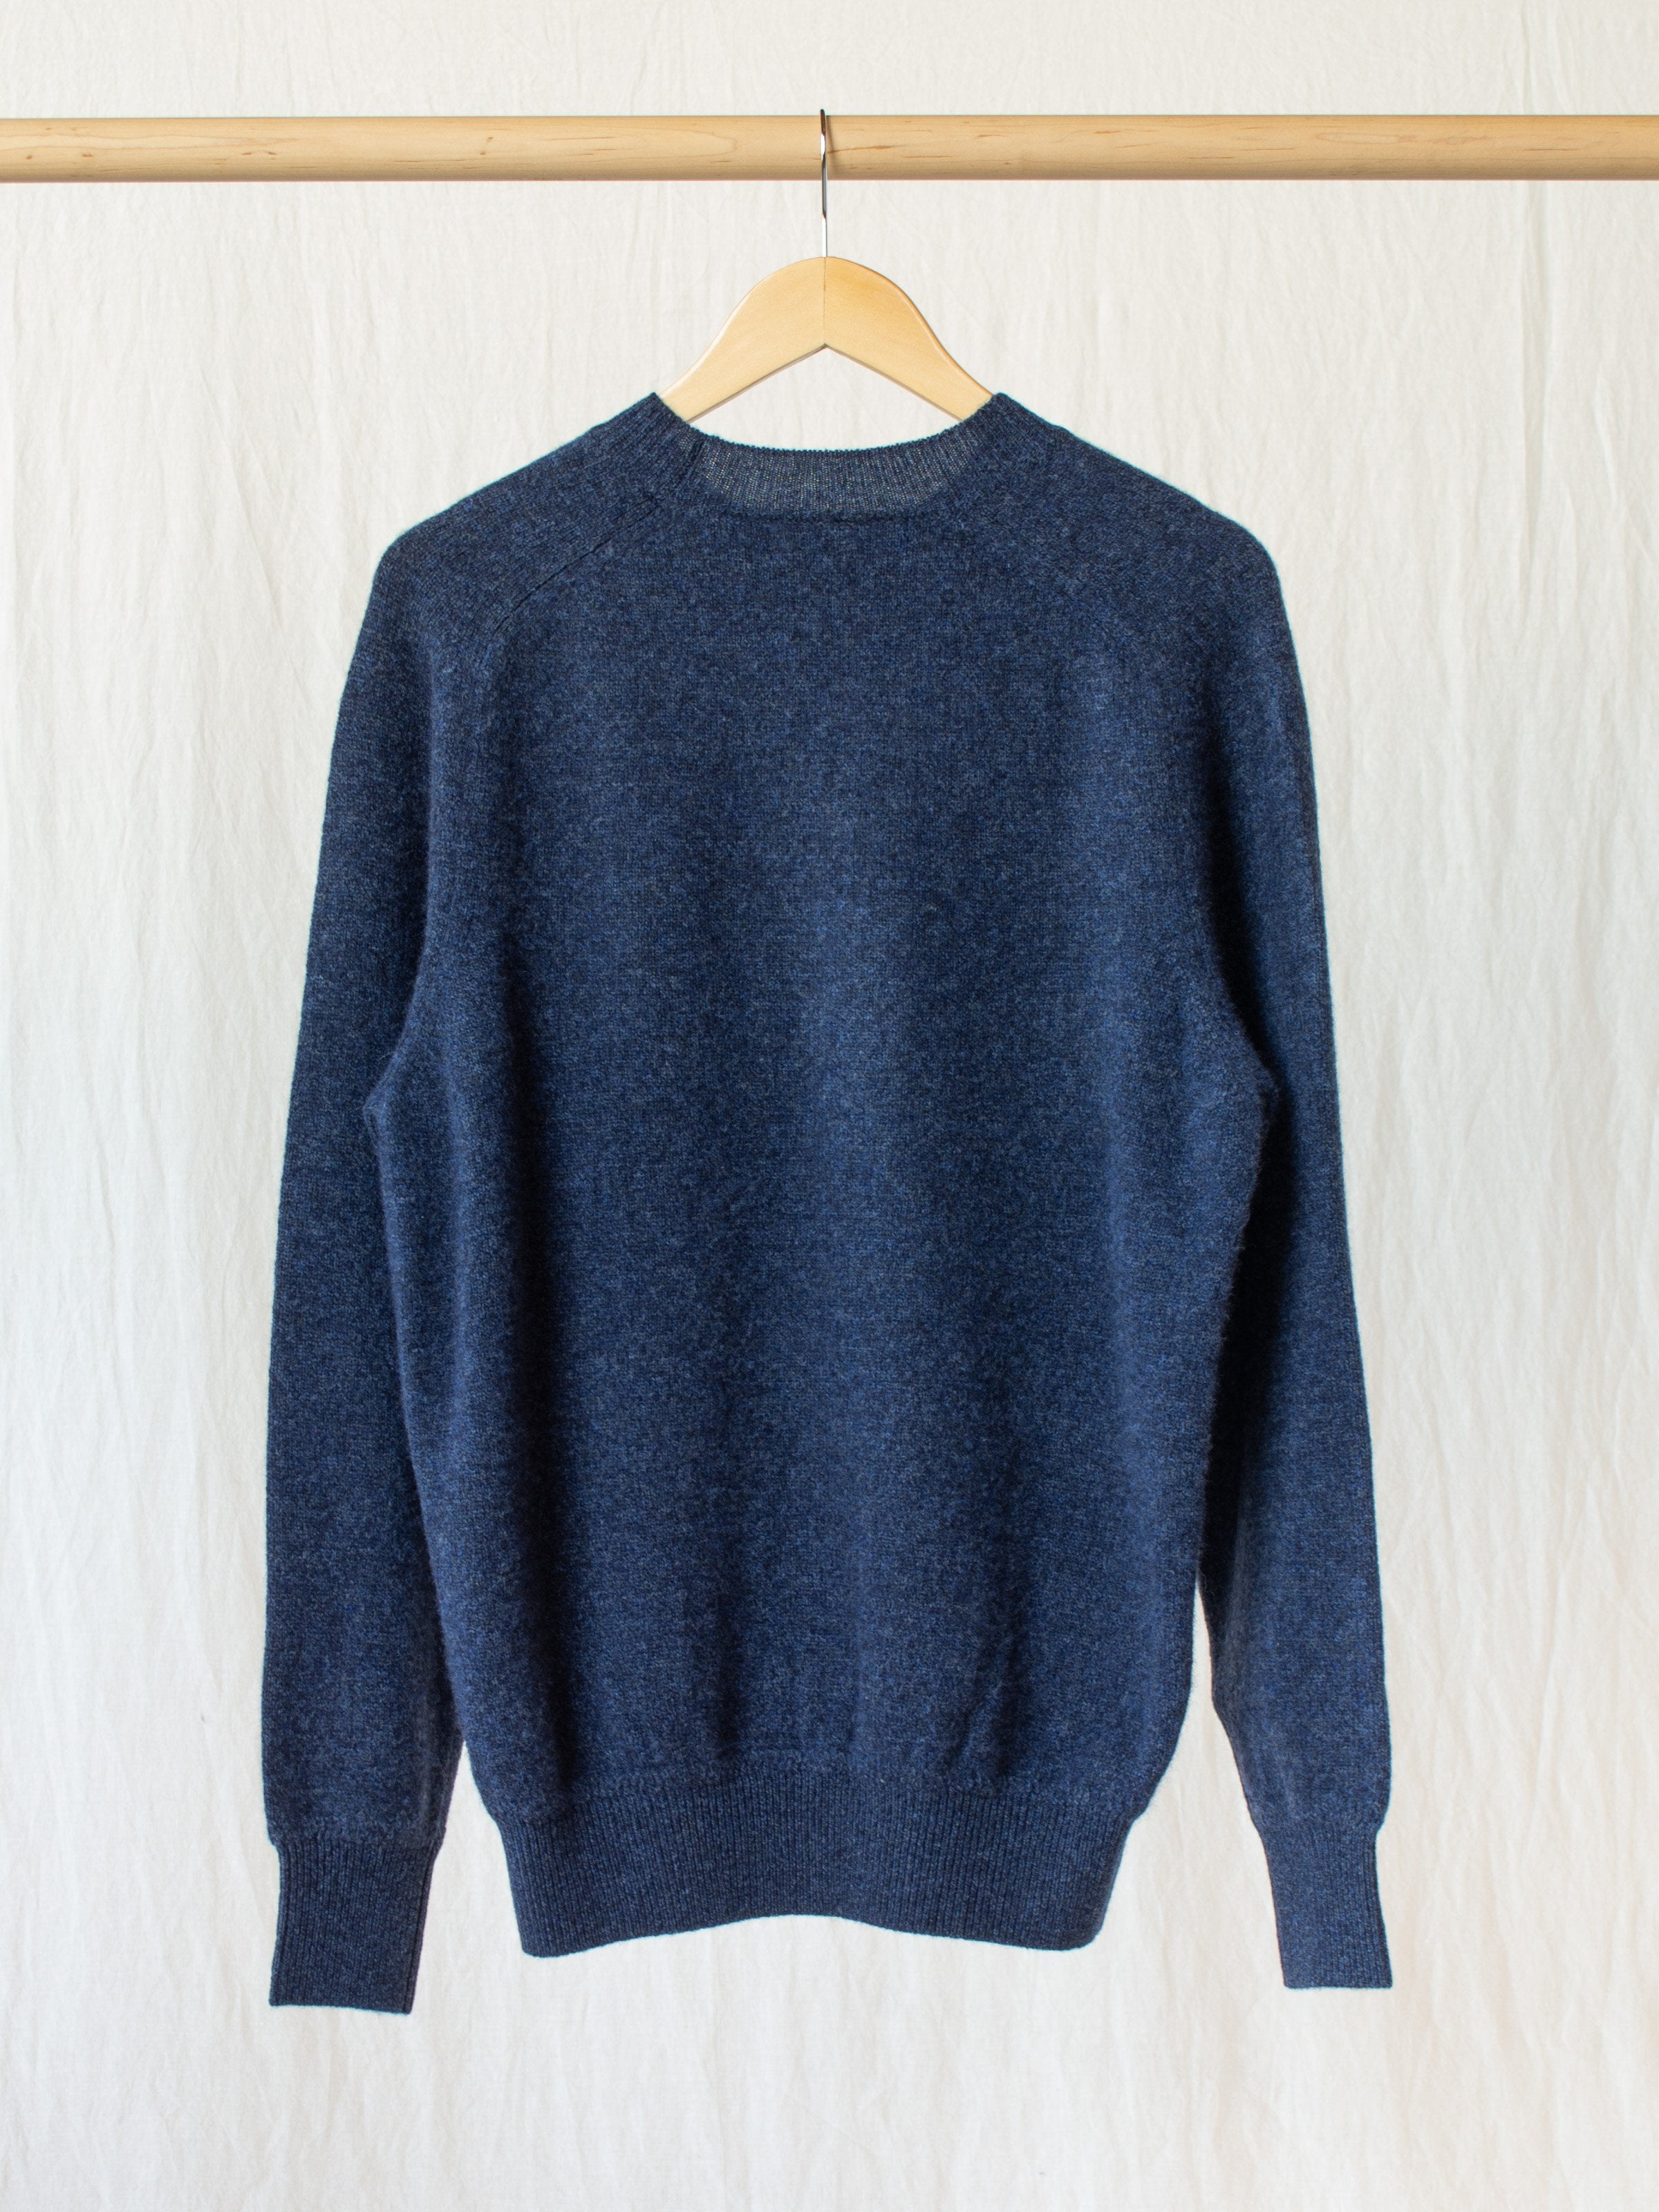 Namu Shop - Phlannel Wool Cashmere Crew Neck Knit - Indigo